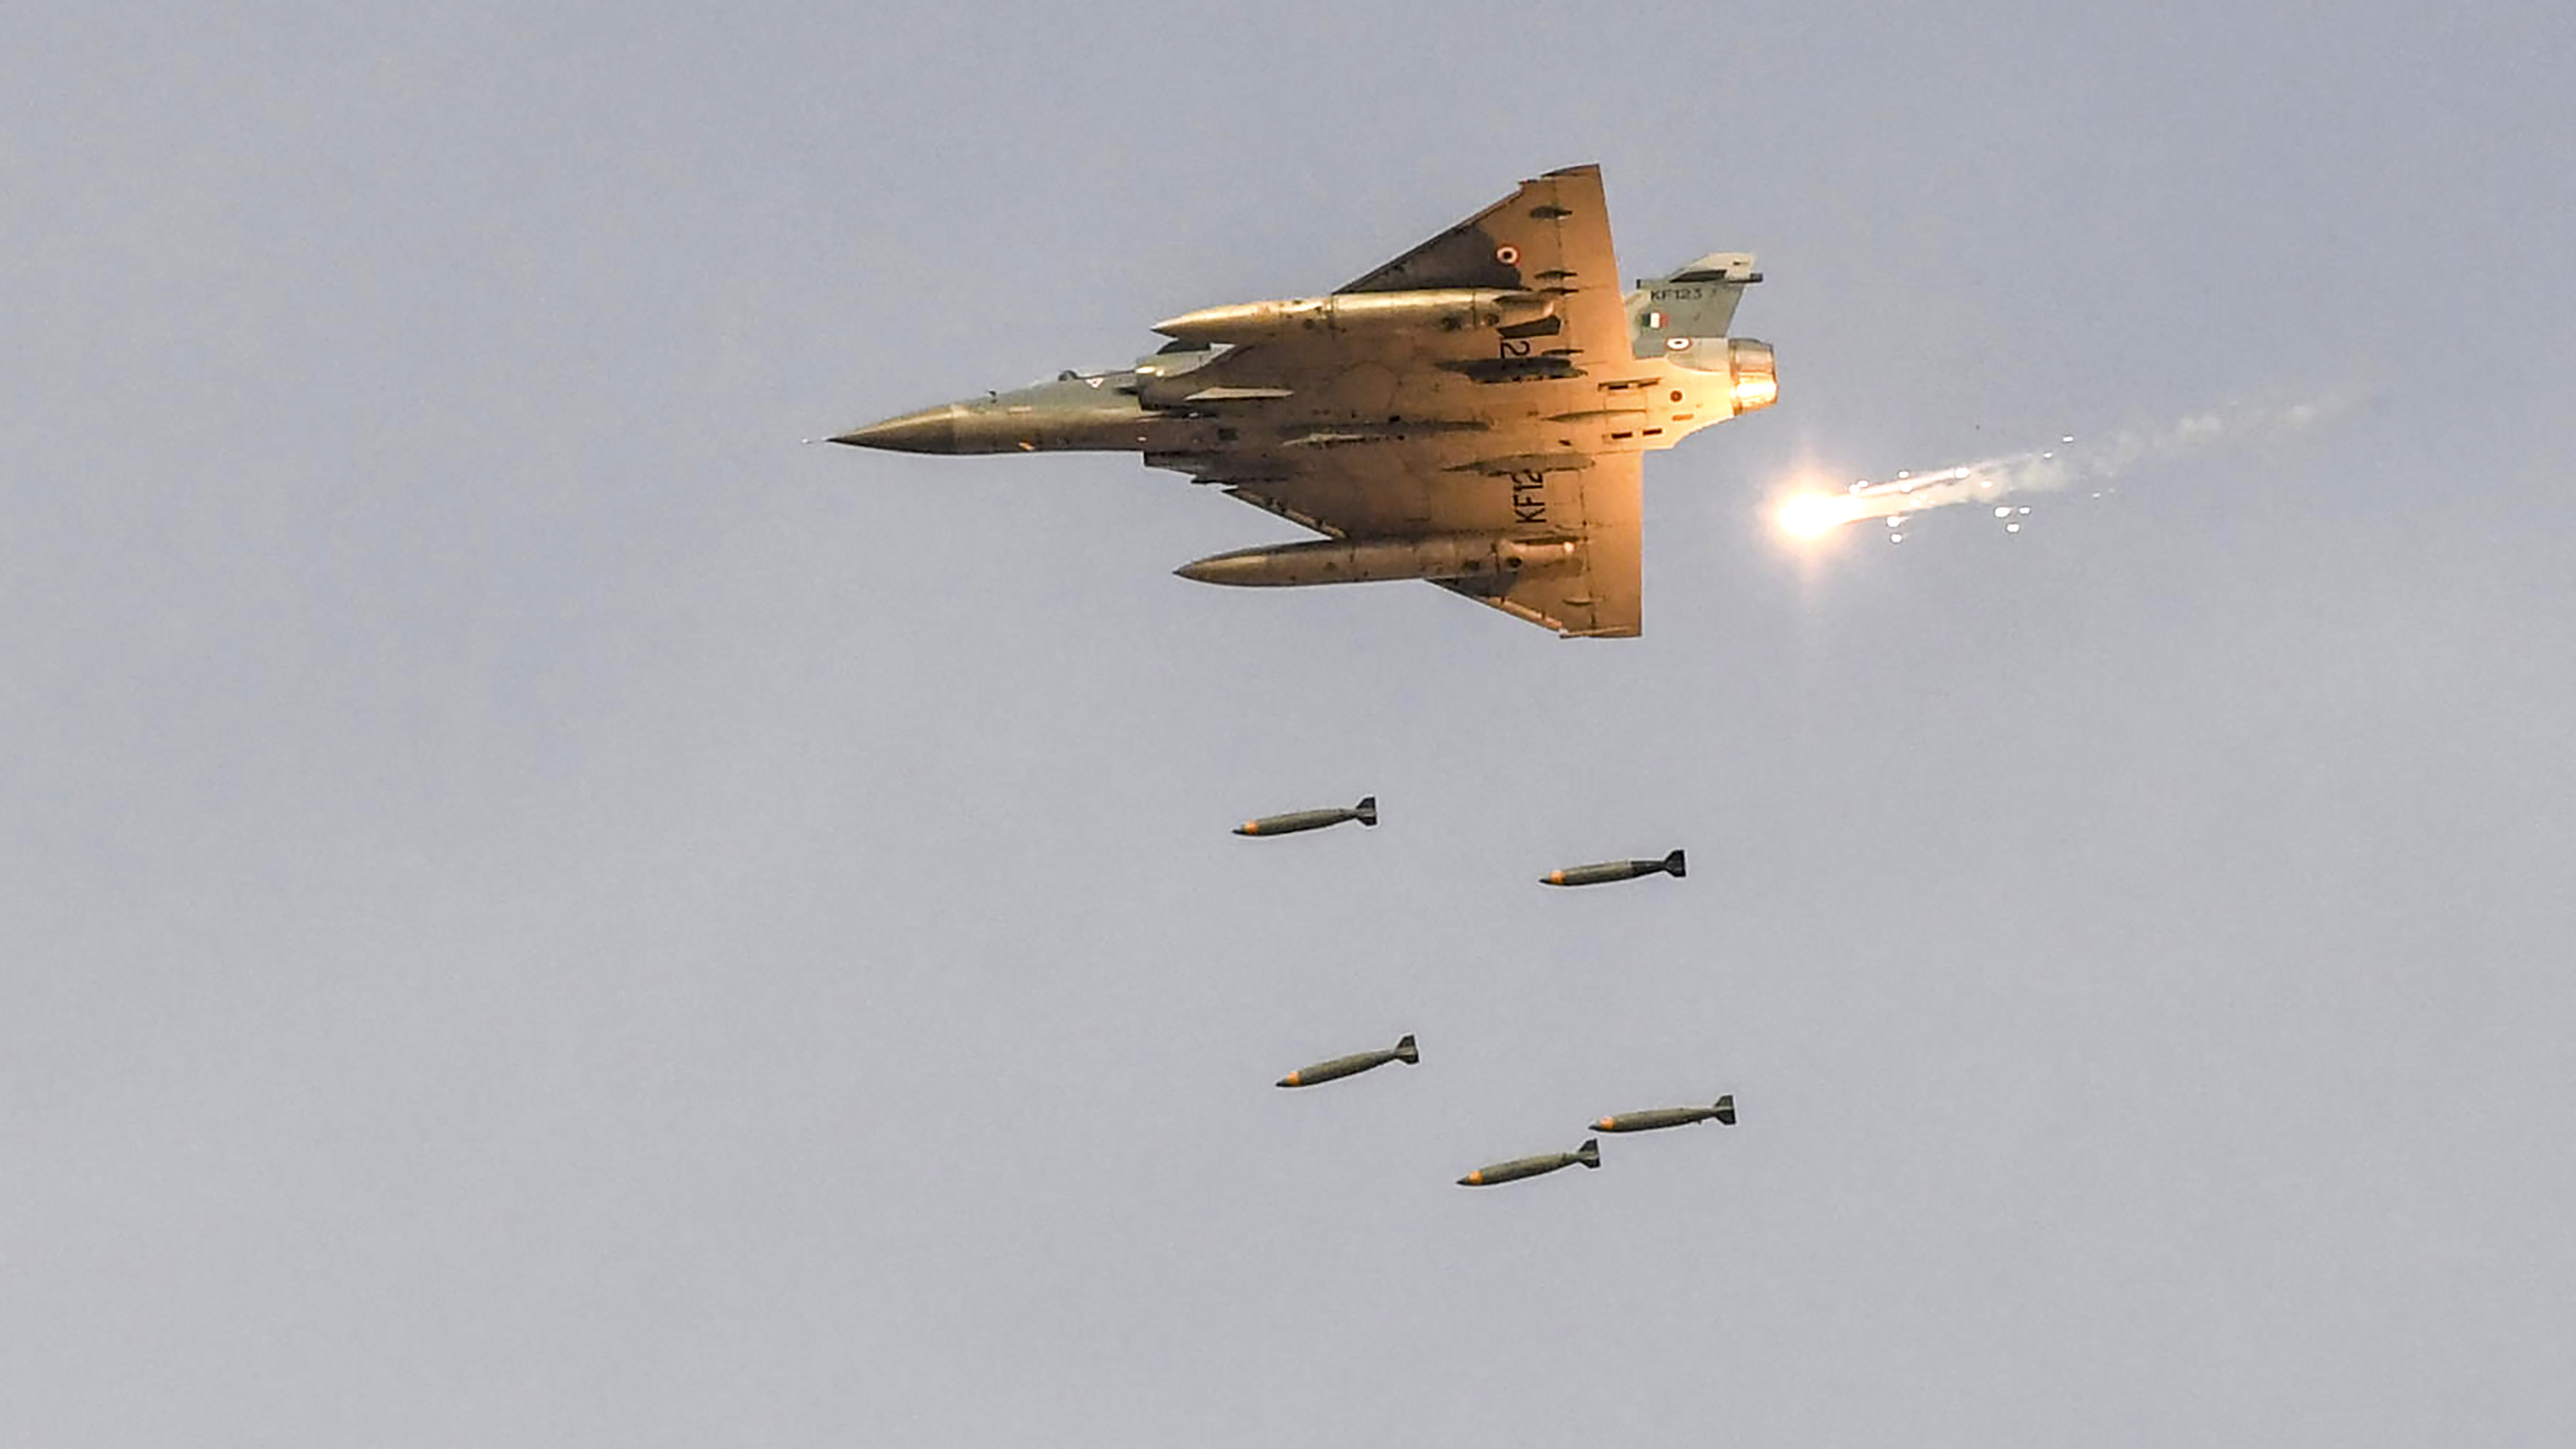 An Indian Air Force (IAF) fighter aircraft drops bombs on dummy targets during the IAF 'Yayu Shakti' fire power demonstration at Pokharan, in the Rajasthan state on February 16, 2019. (PRAKASH SINGH/AFP/Getty Images)